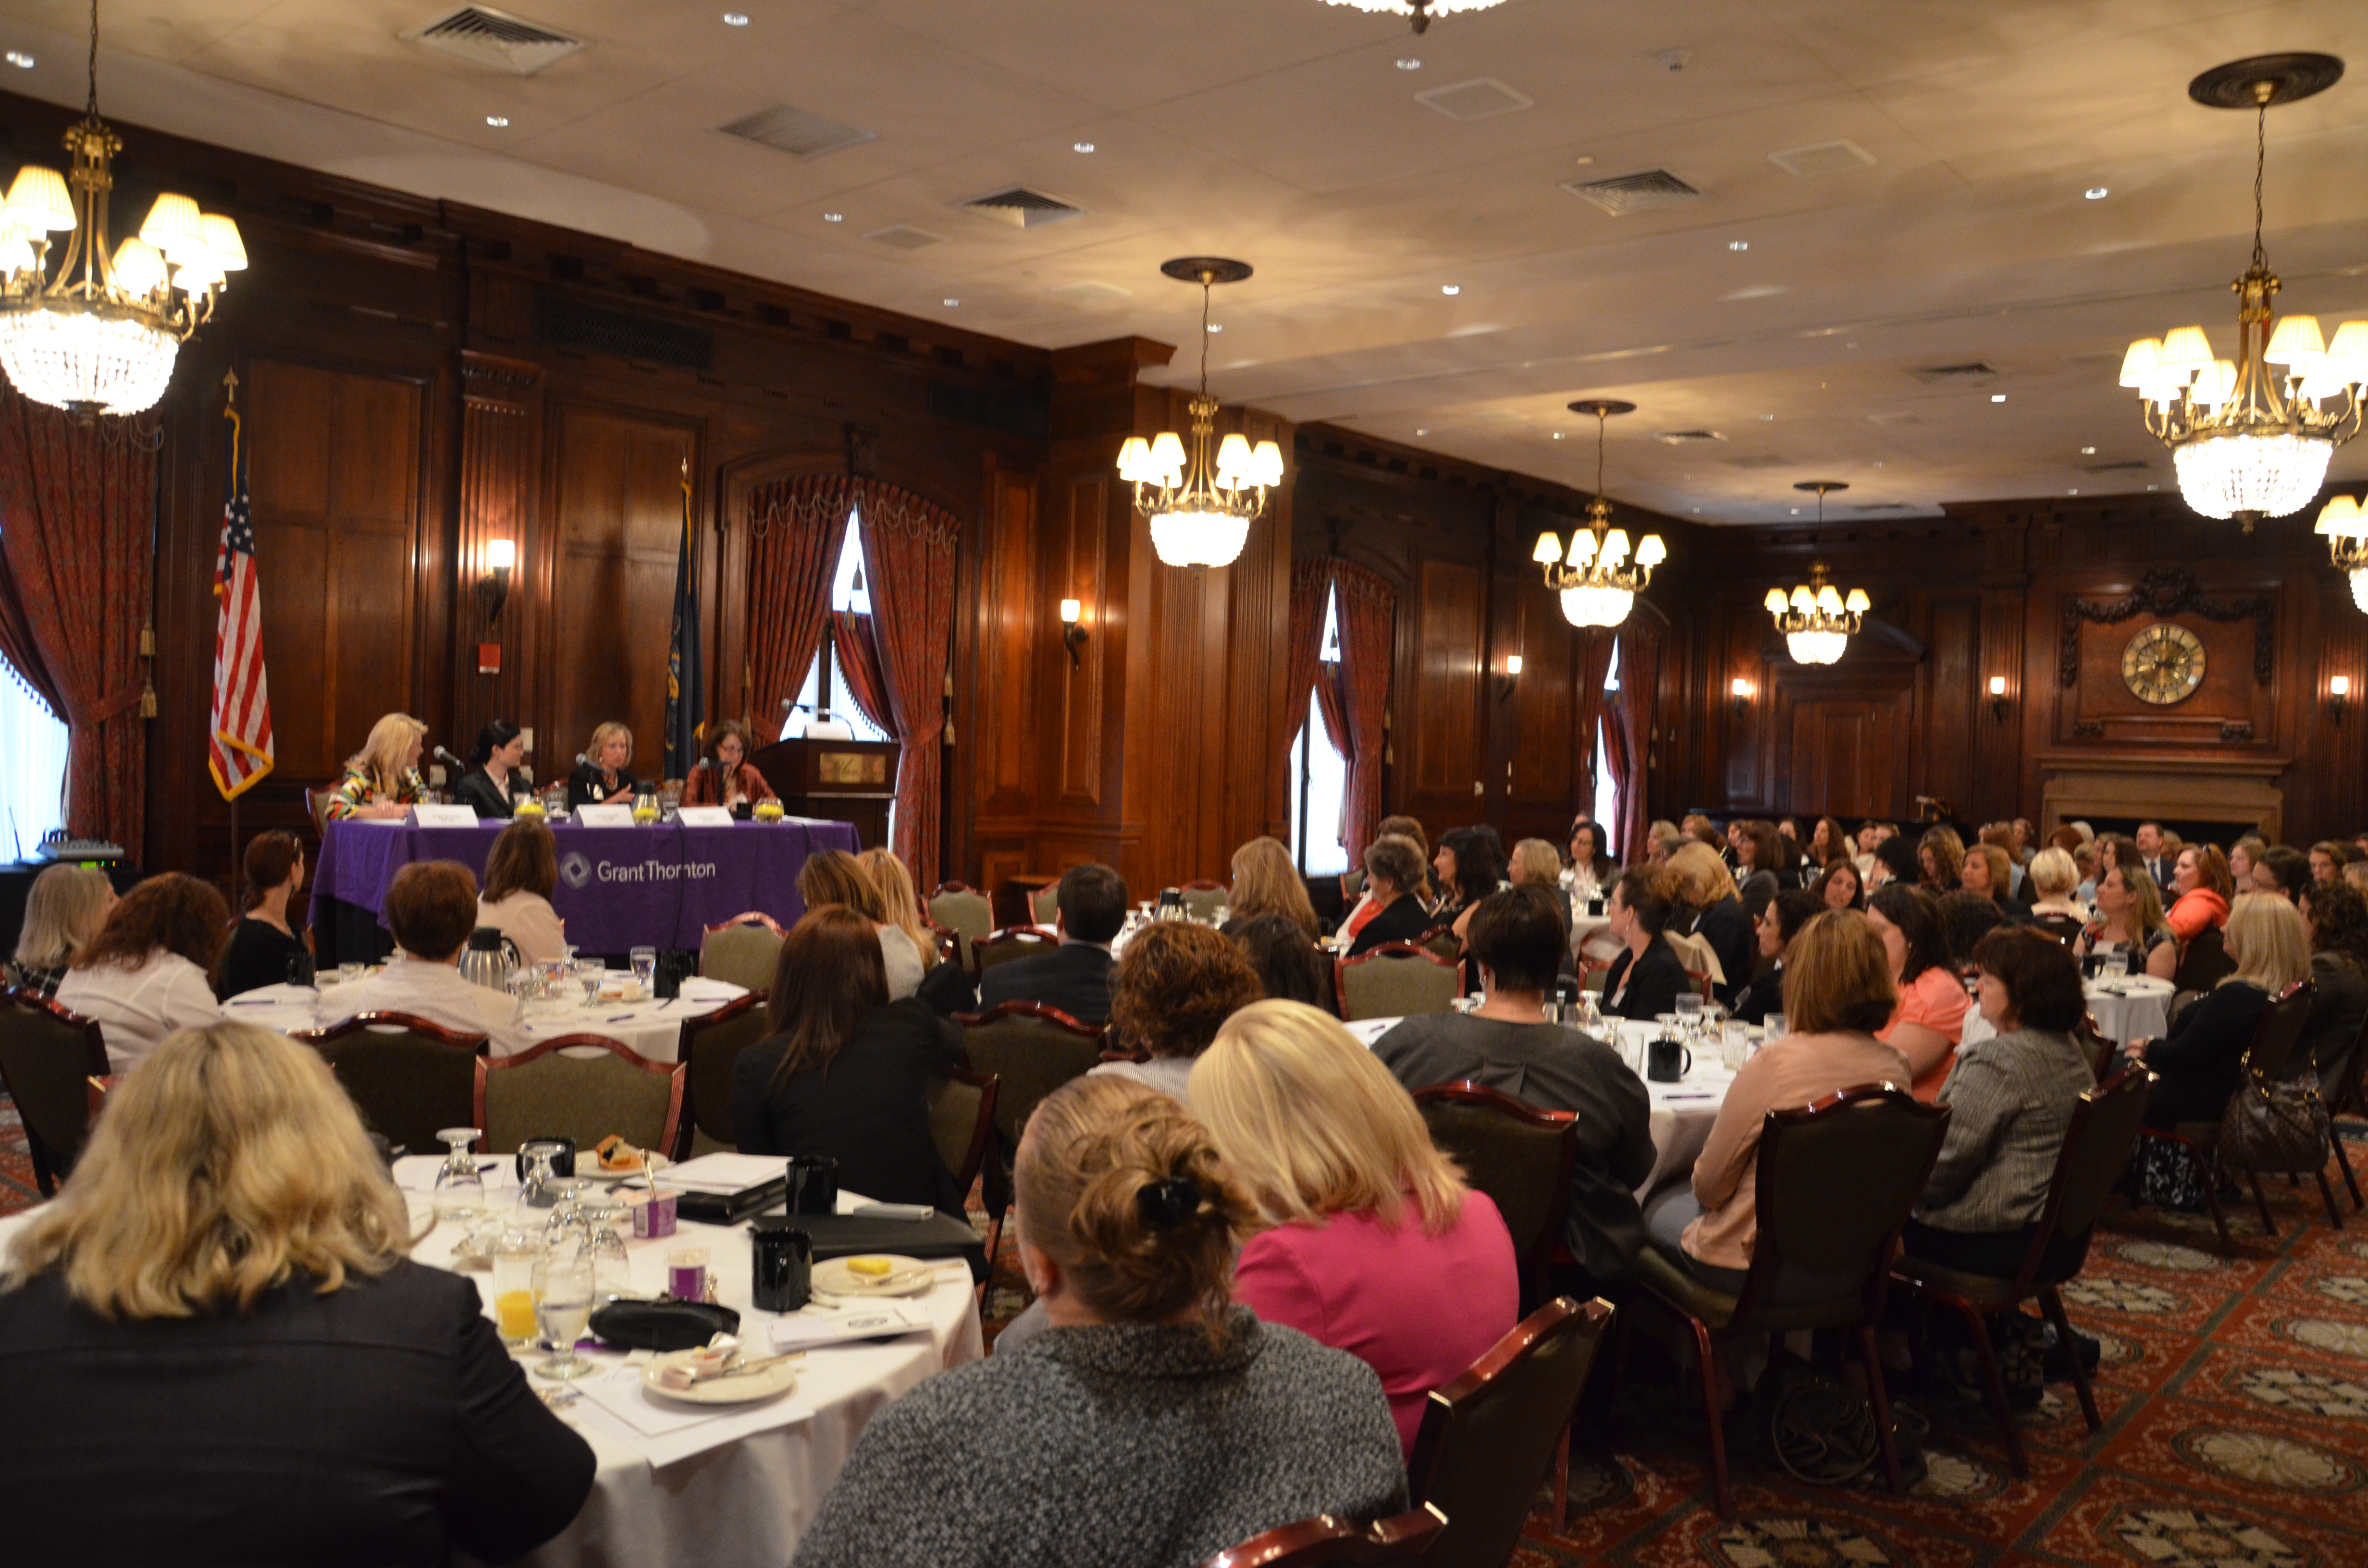 It wasn't just women who attended last week's women's leadership event; a large turnout of women and men listen to the panelists and enjoy breakfast in the Union League's Grant Room.